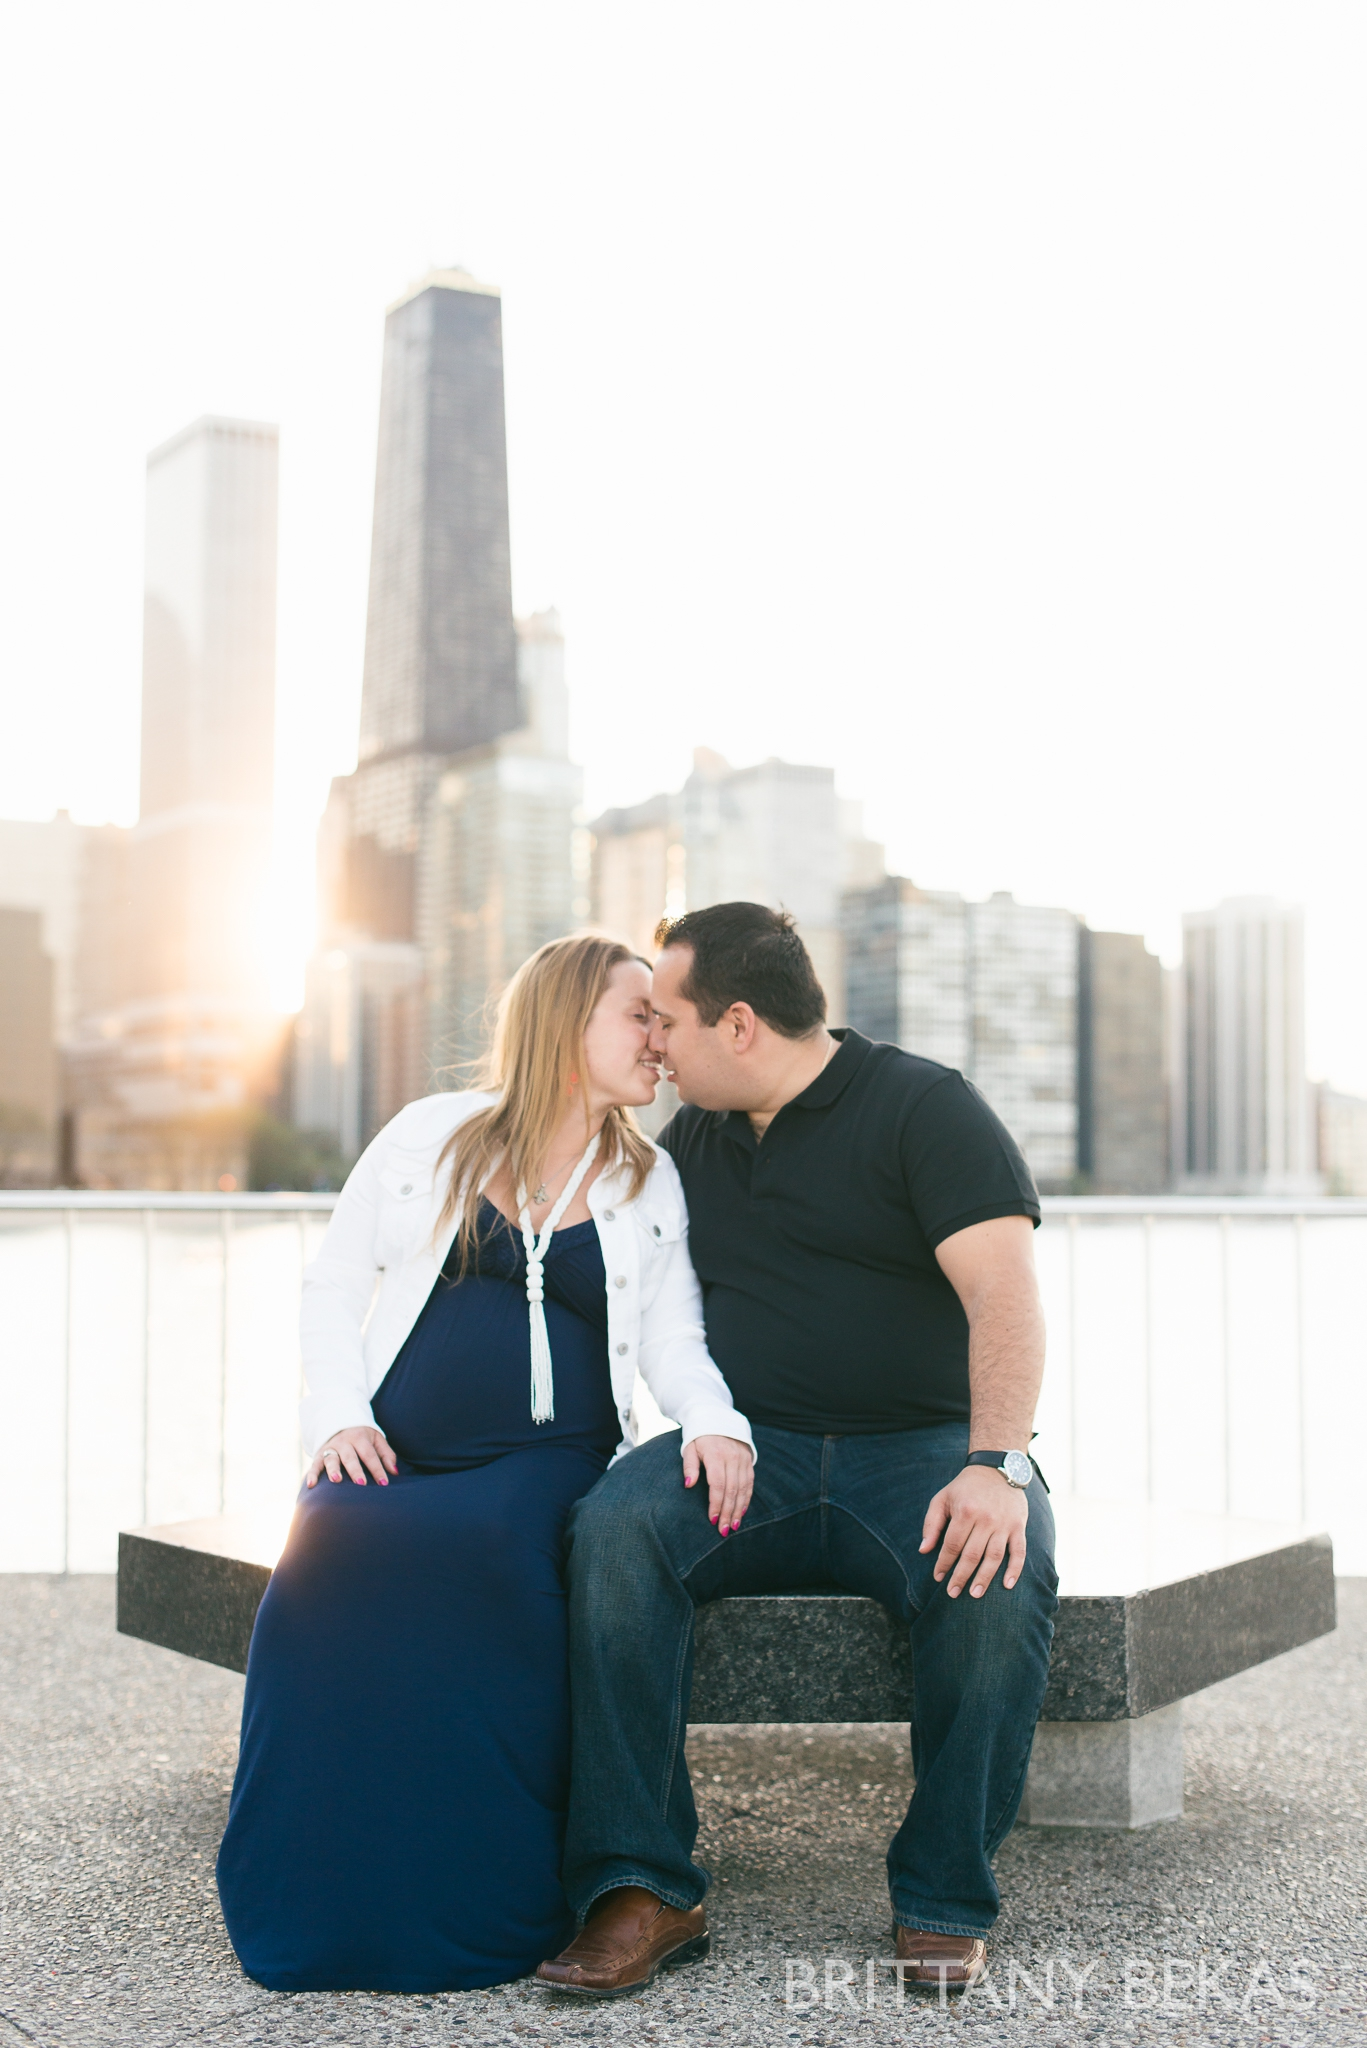 Chicago Maternity Photos - Olive Park Maternity Photos_0013